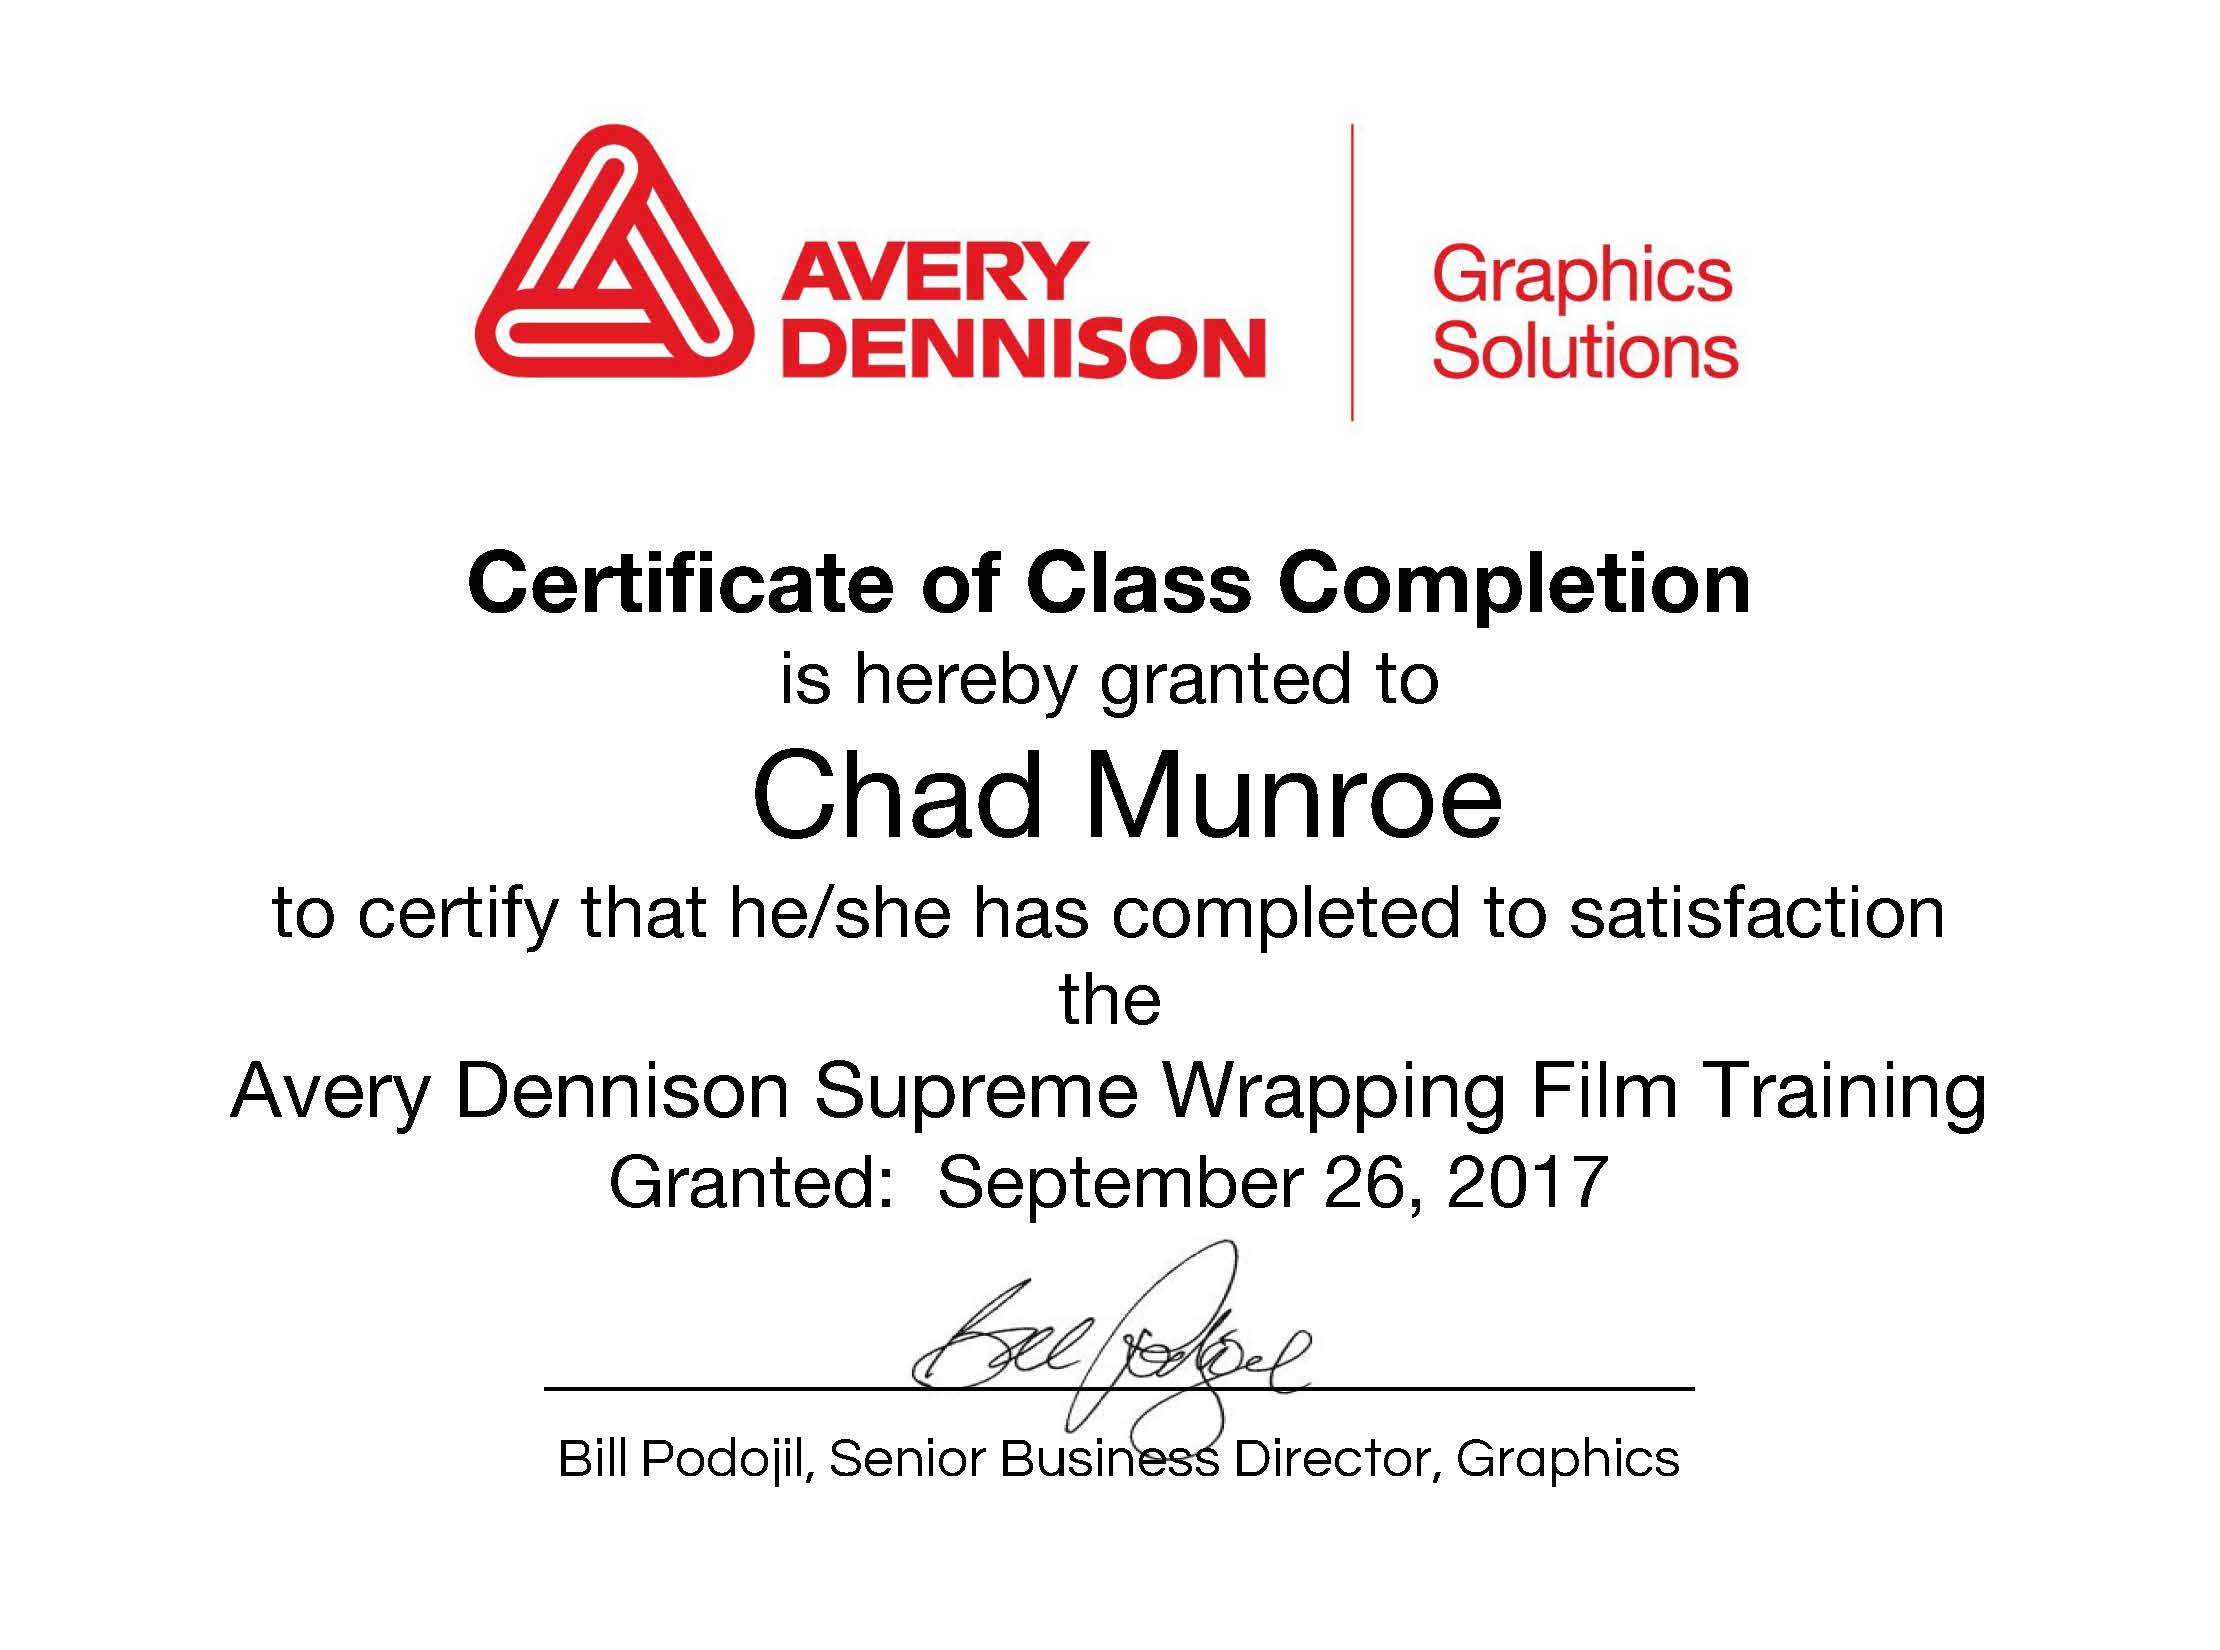 Chad Munroe Completes Avery Dennison Supreme Wrapping Film Training